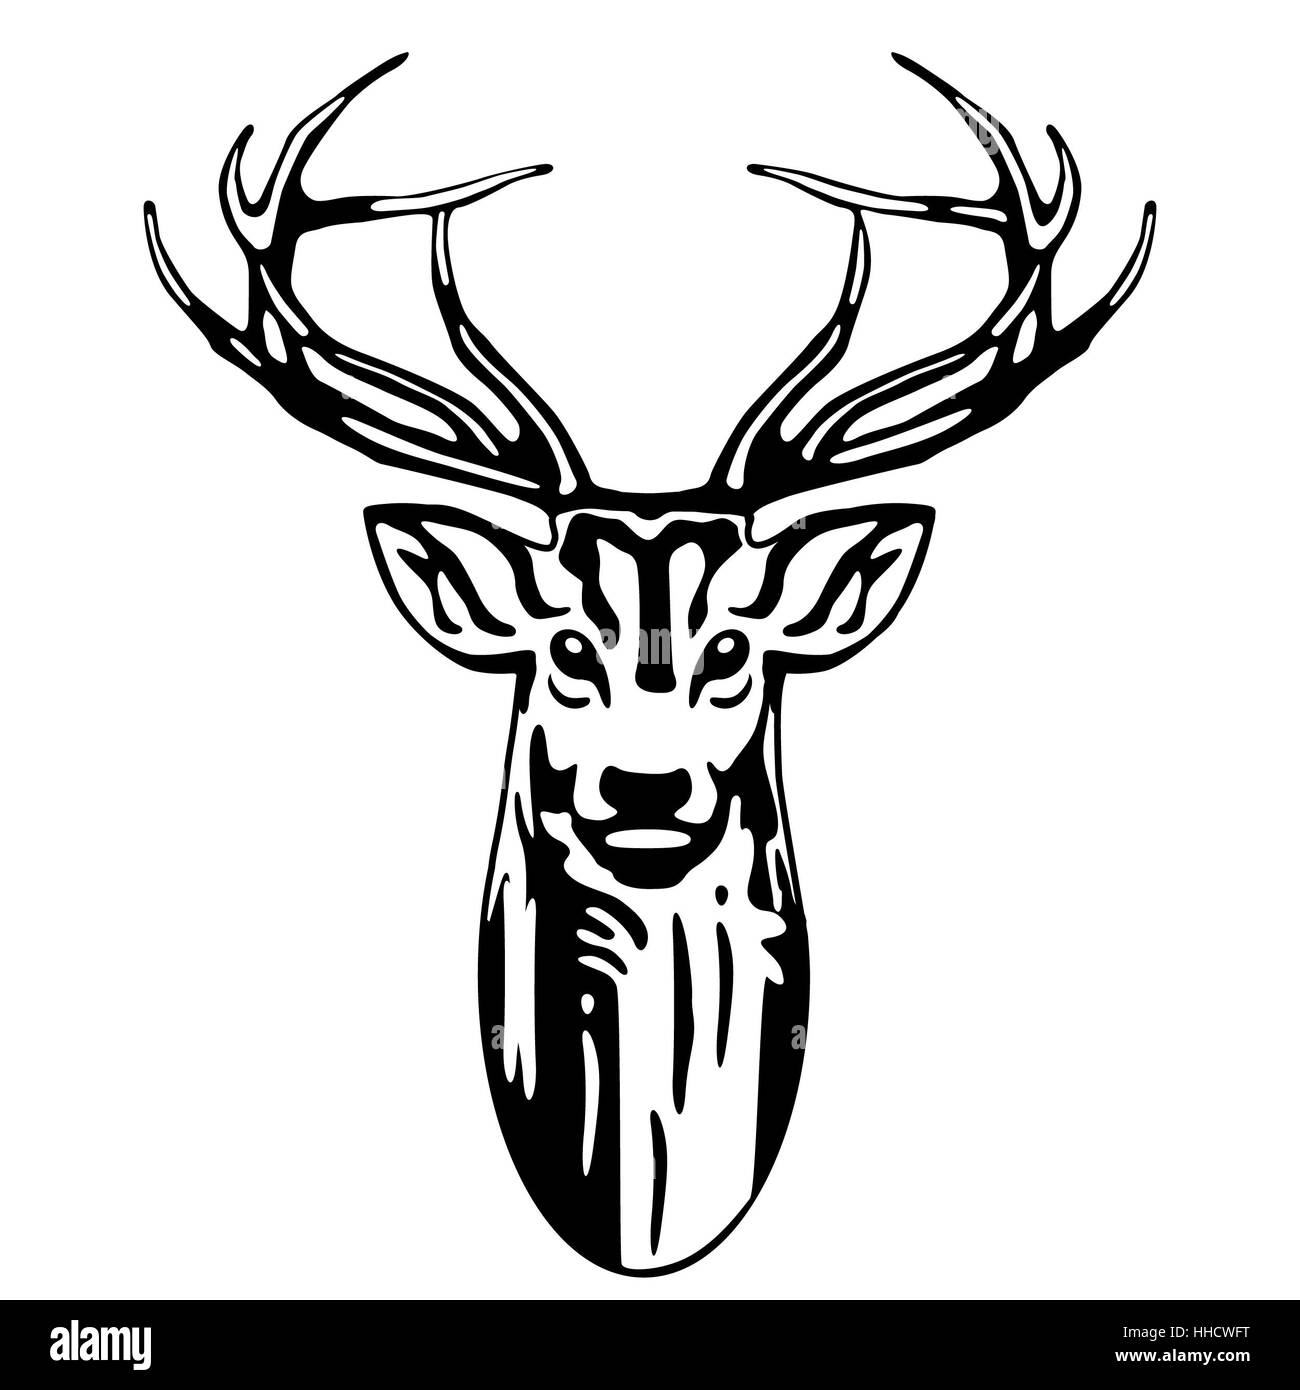 reindeer antlers of a stag Stock Photo